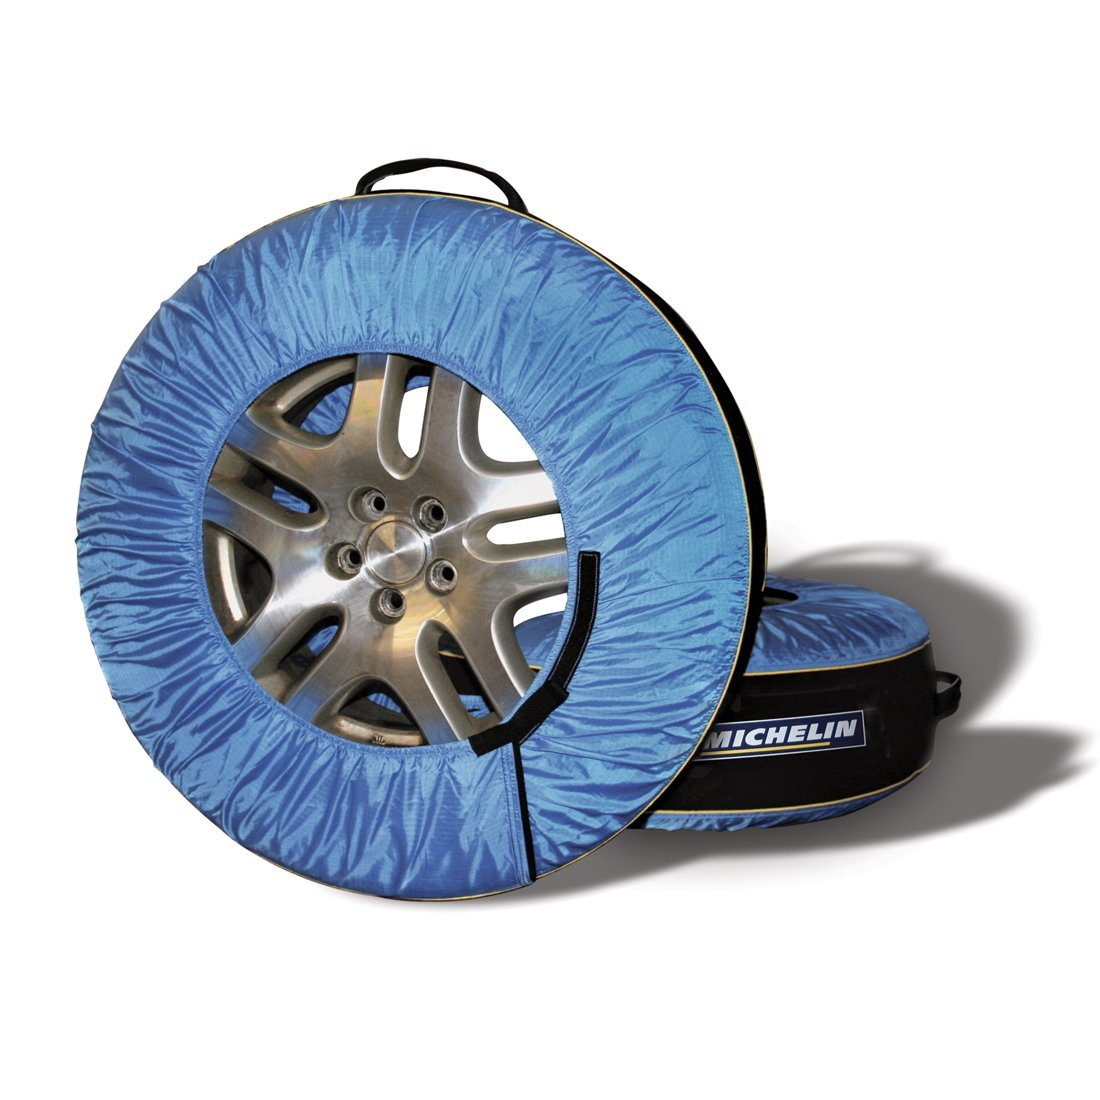 MICHELIN Black/Blue 80 Tire Covers & Tire Bags-Pack of 4, 4 Pack